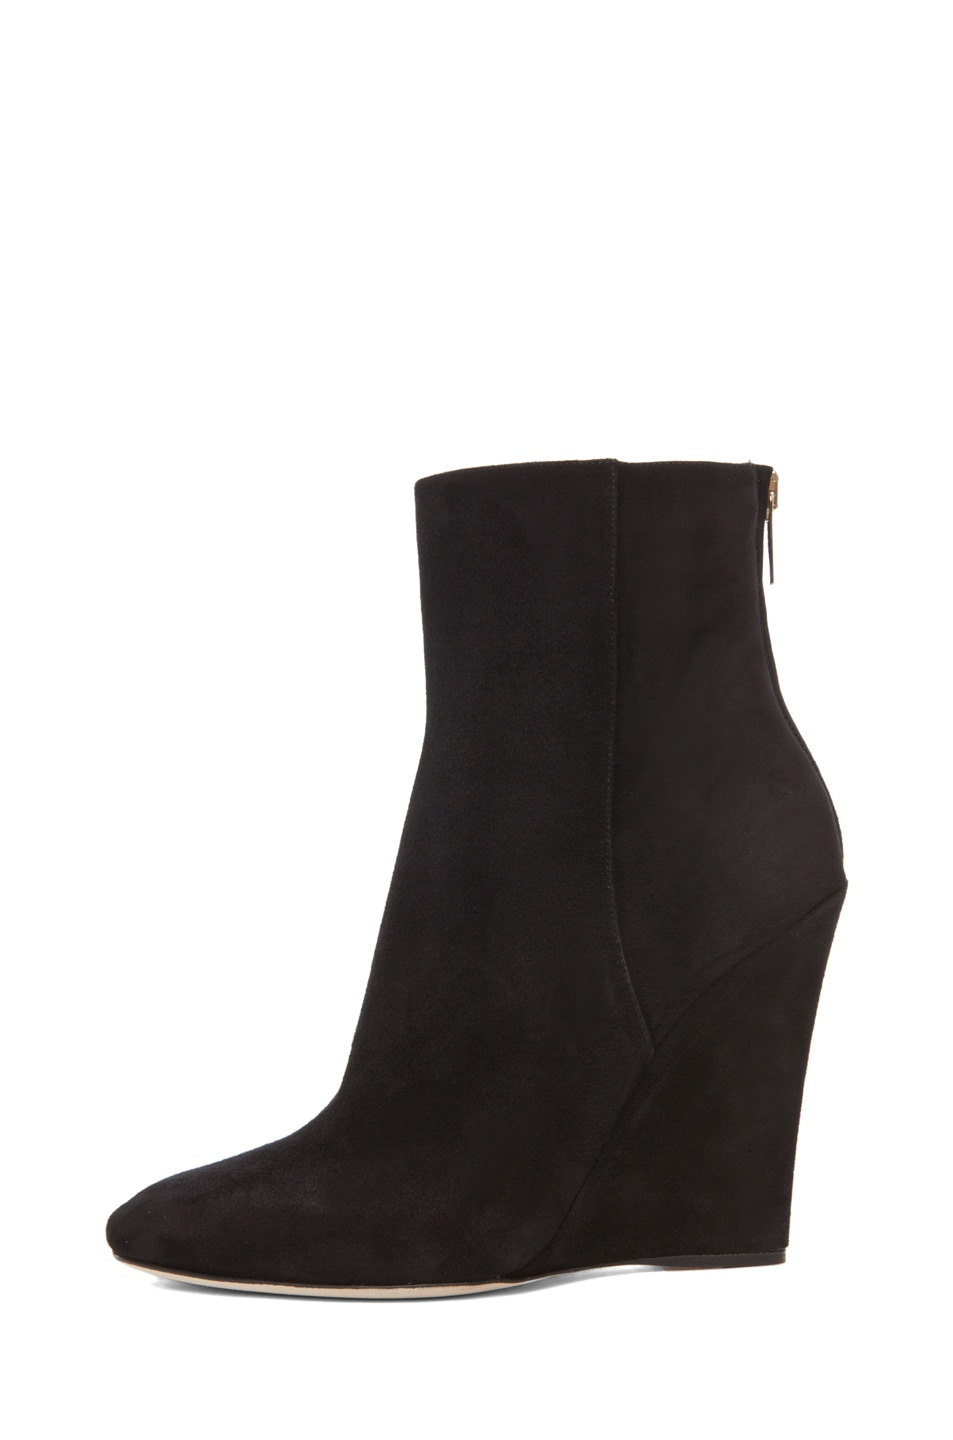 Image 1 of Jimmy Choo Mercury Suede Wedge Booties in Black